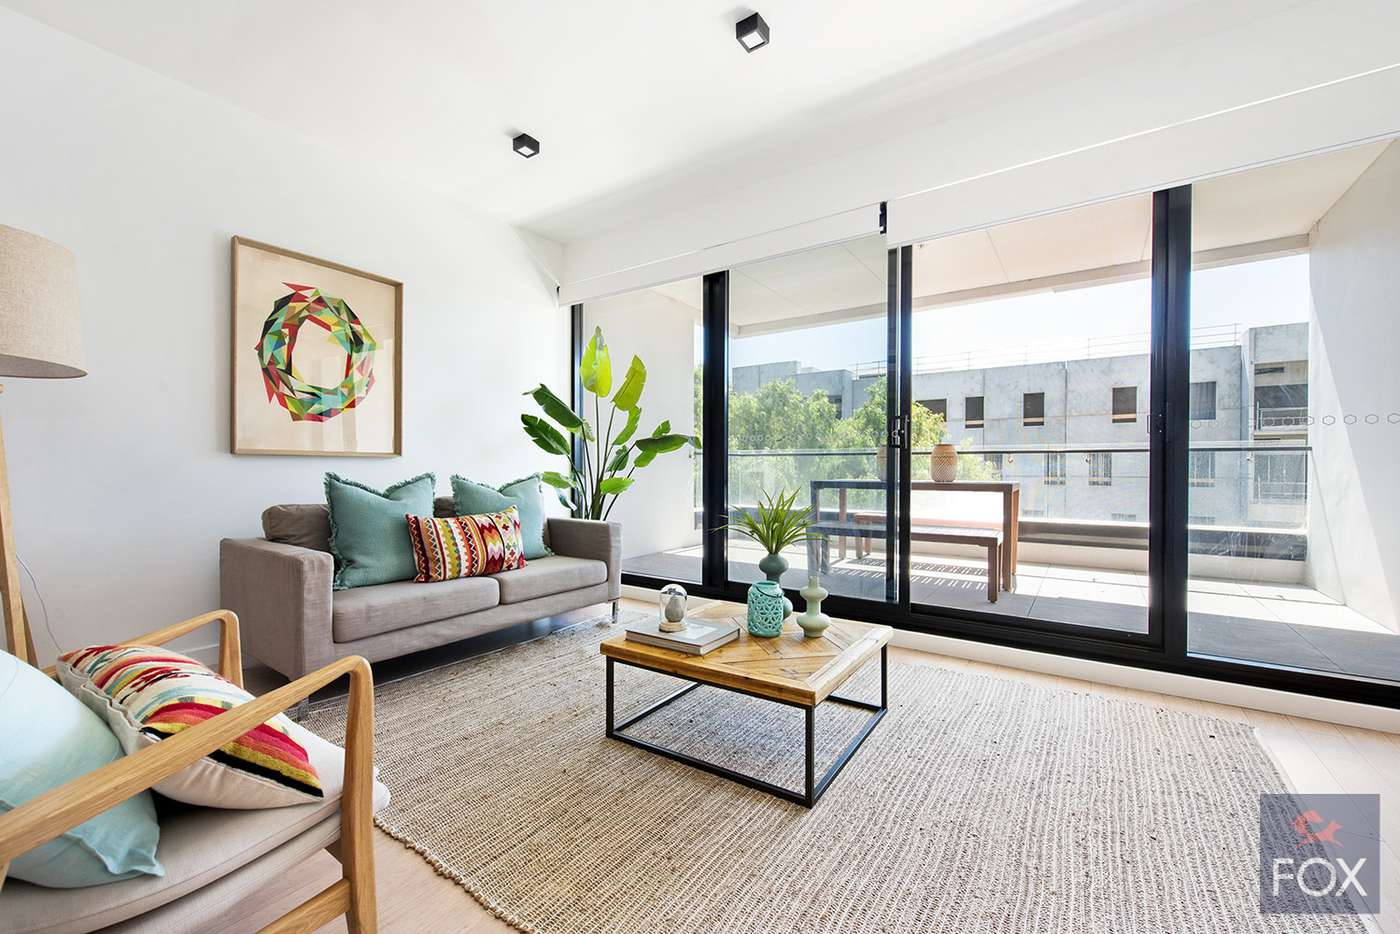 Main view of Homely apartment listing, 201/14 Sixth Street, Bowden SA 5007